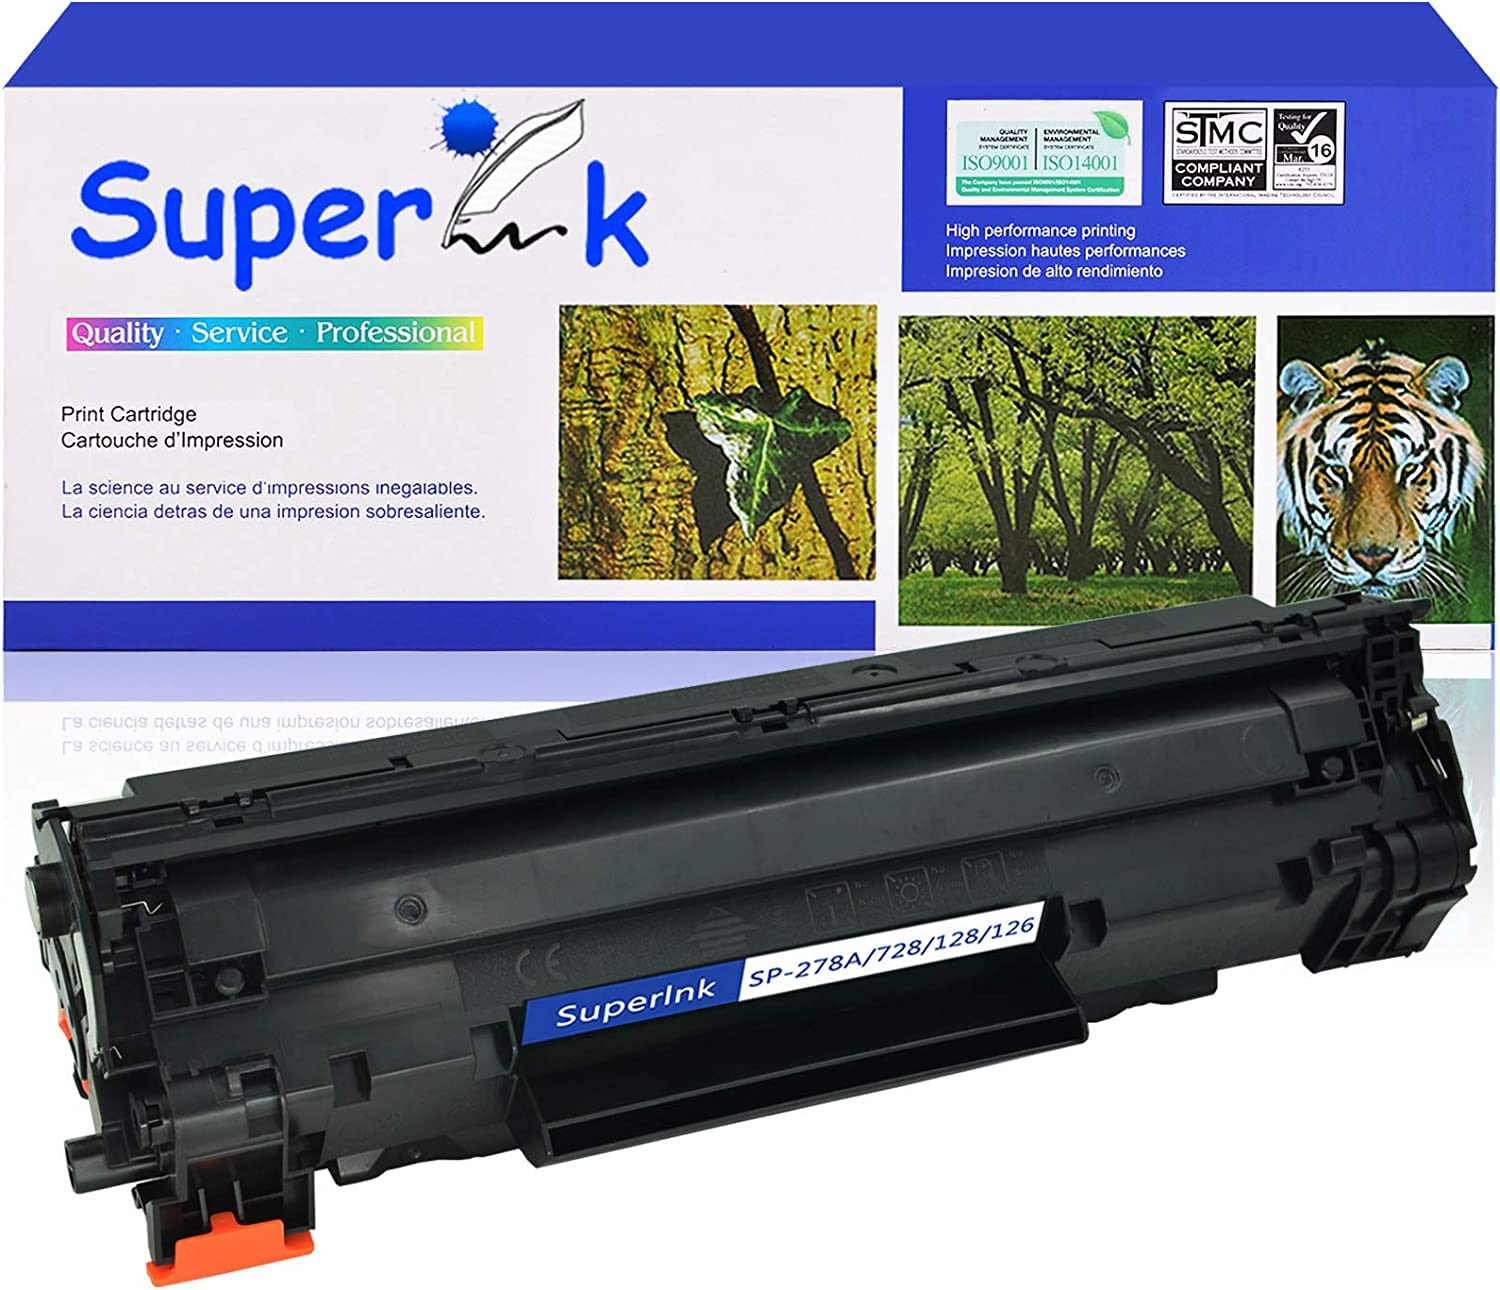 Black, 1-Pack SuperInk Toner Cartridge Replacement Compatible for Canon 126 CRG126 3483B001 to use with ImageClass LBP6200 LBP6200d Multi-Function Printer